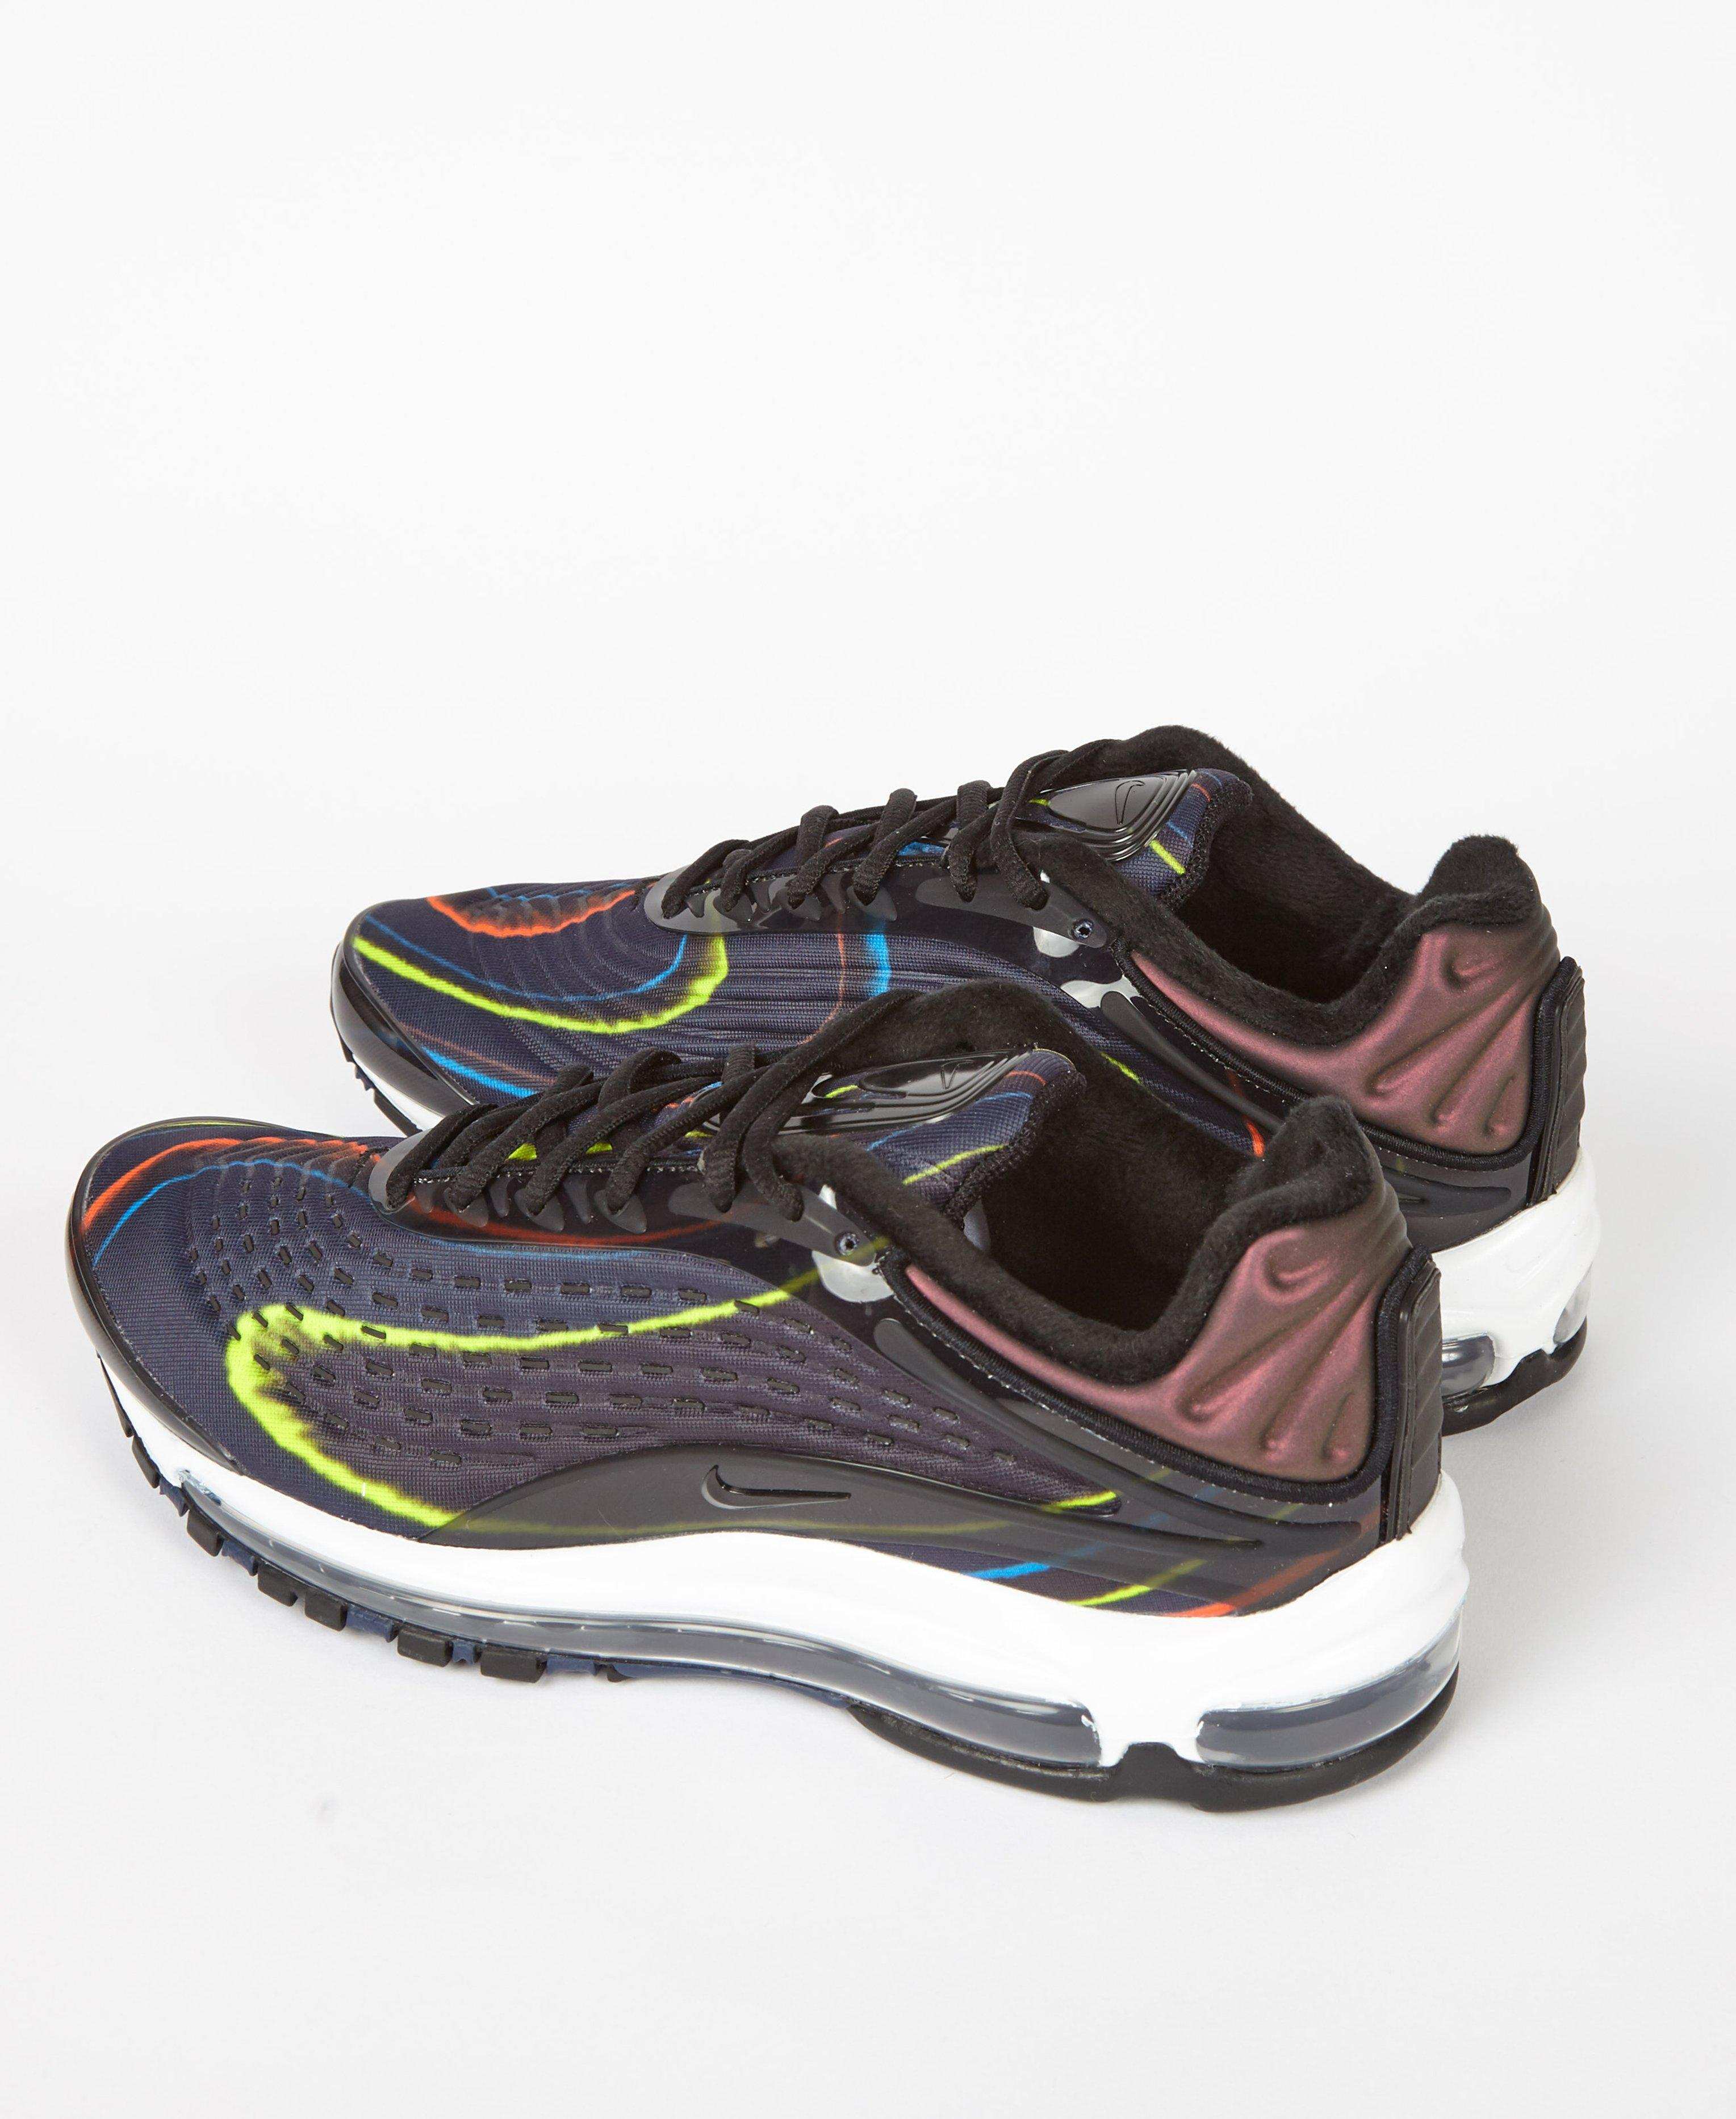 new product 3bbc0 ccc35 Lyst - Nike Air Max Deluxe midnight for Men